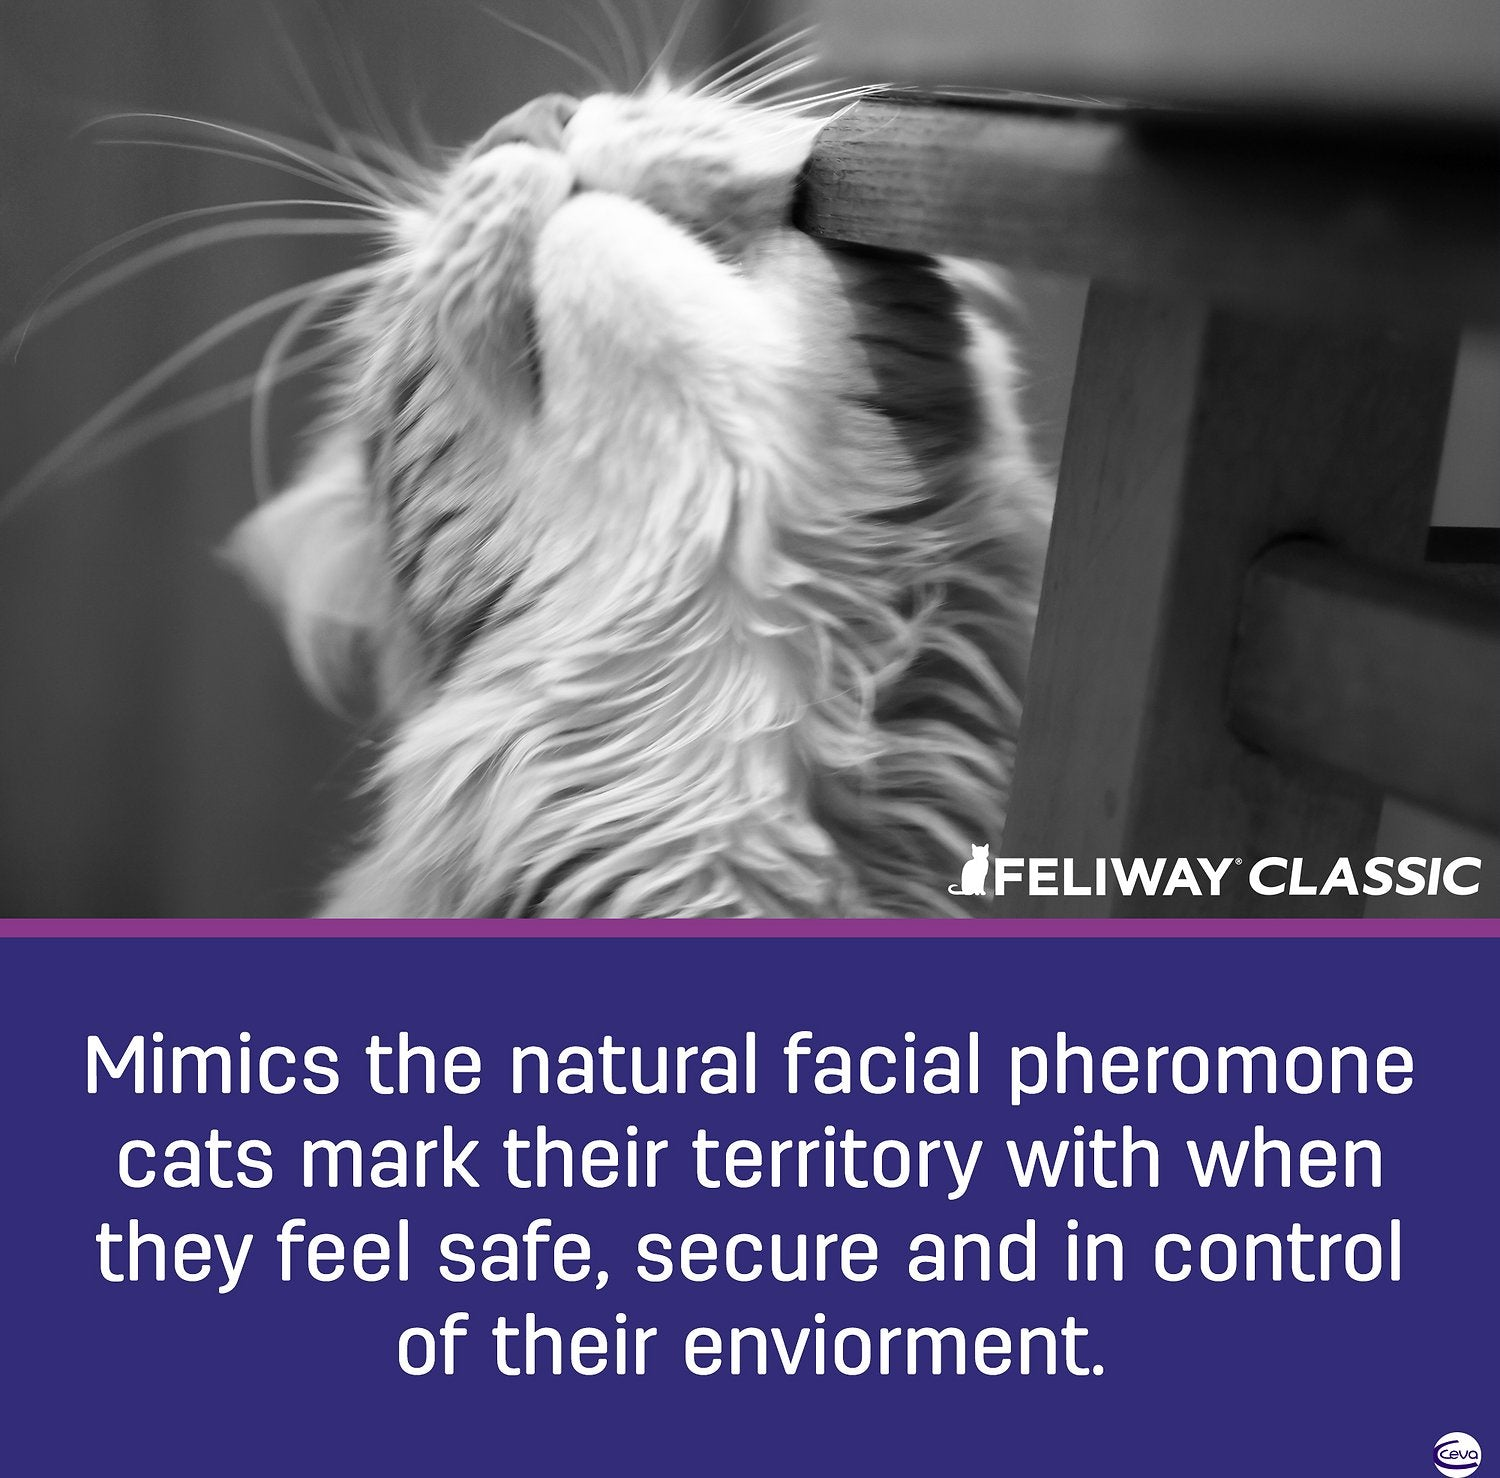 Feliway Classic - Refill (Diffuser Plug-In Not Included)